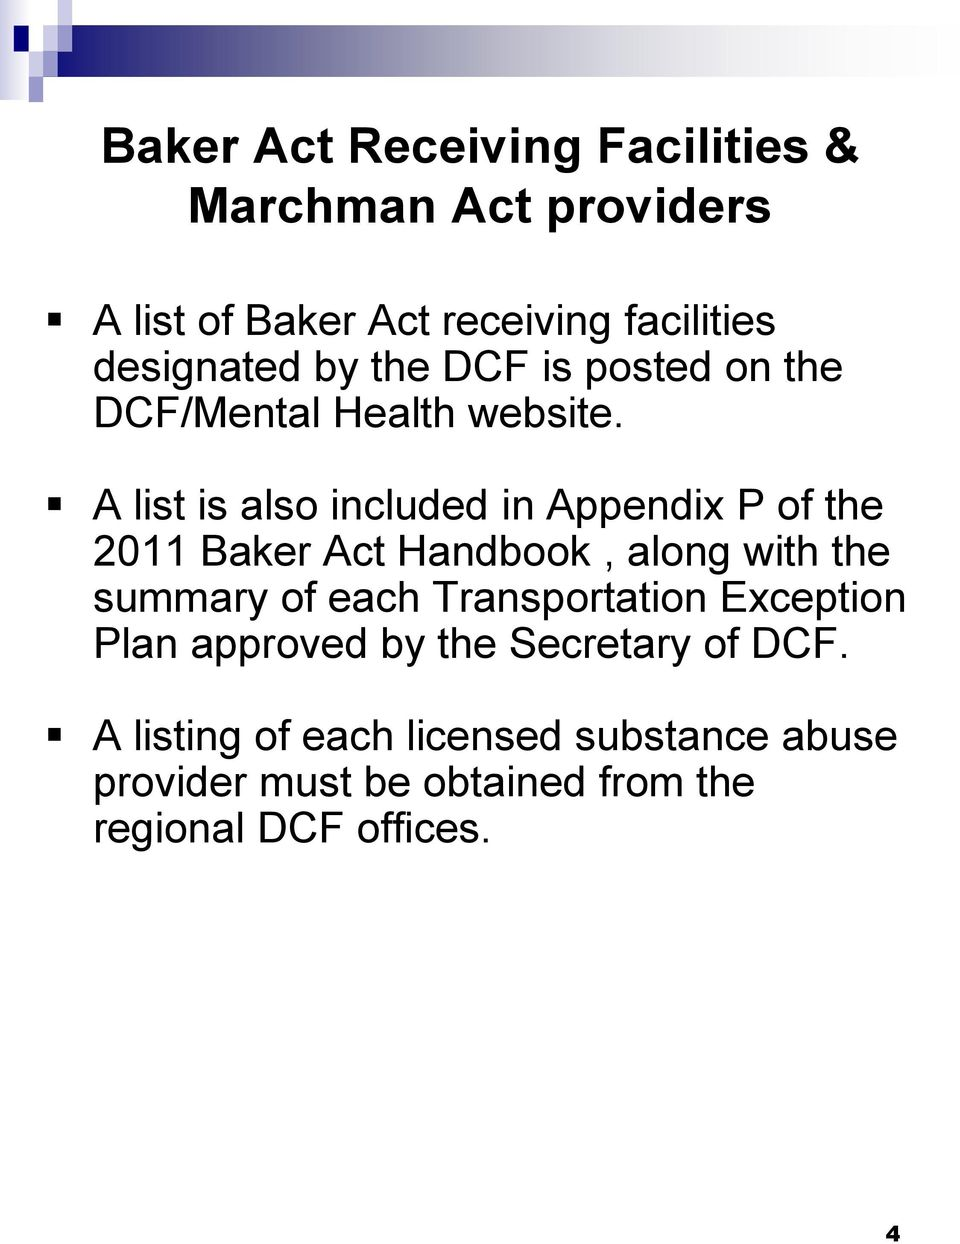 A list is also included in Appendix P of the 2011 Baker Act Handbook, along with the summary of each